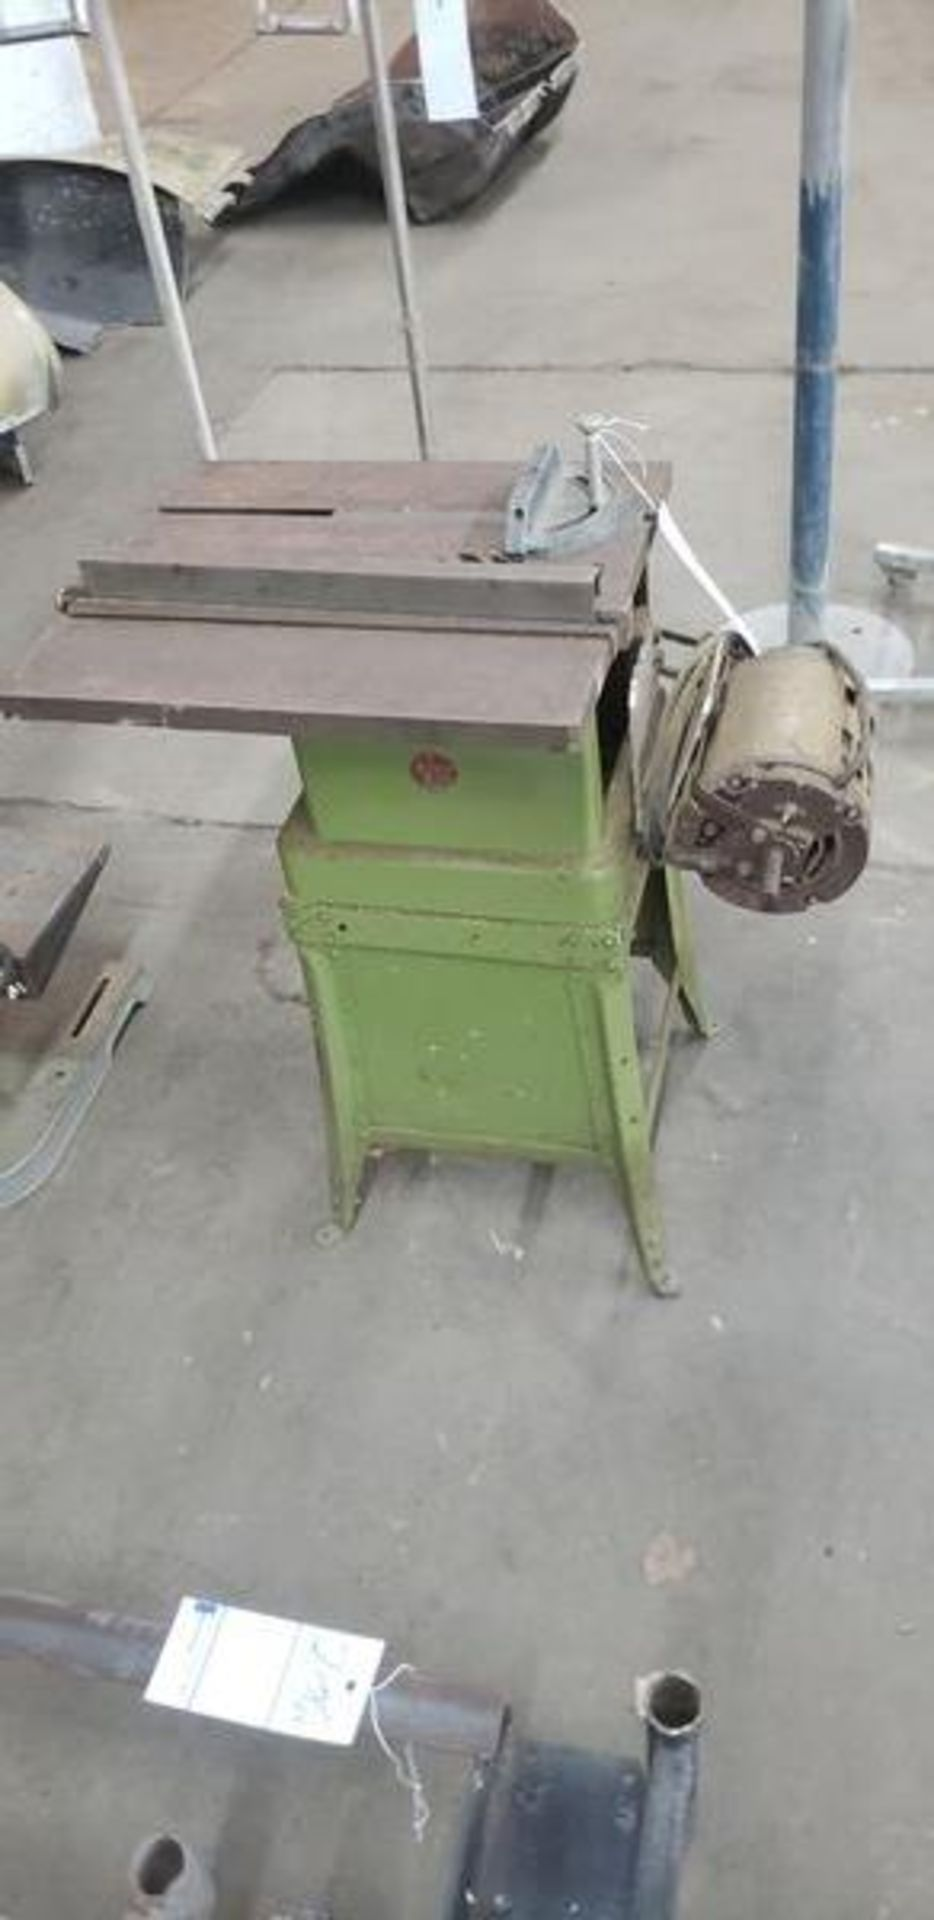 POWER KING TABLE SAW WITH BASE - Image 5 of 5